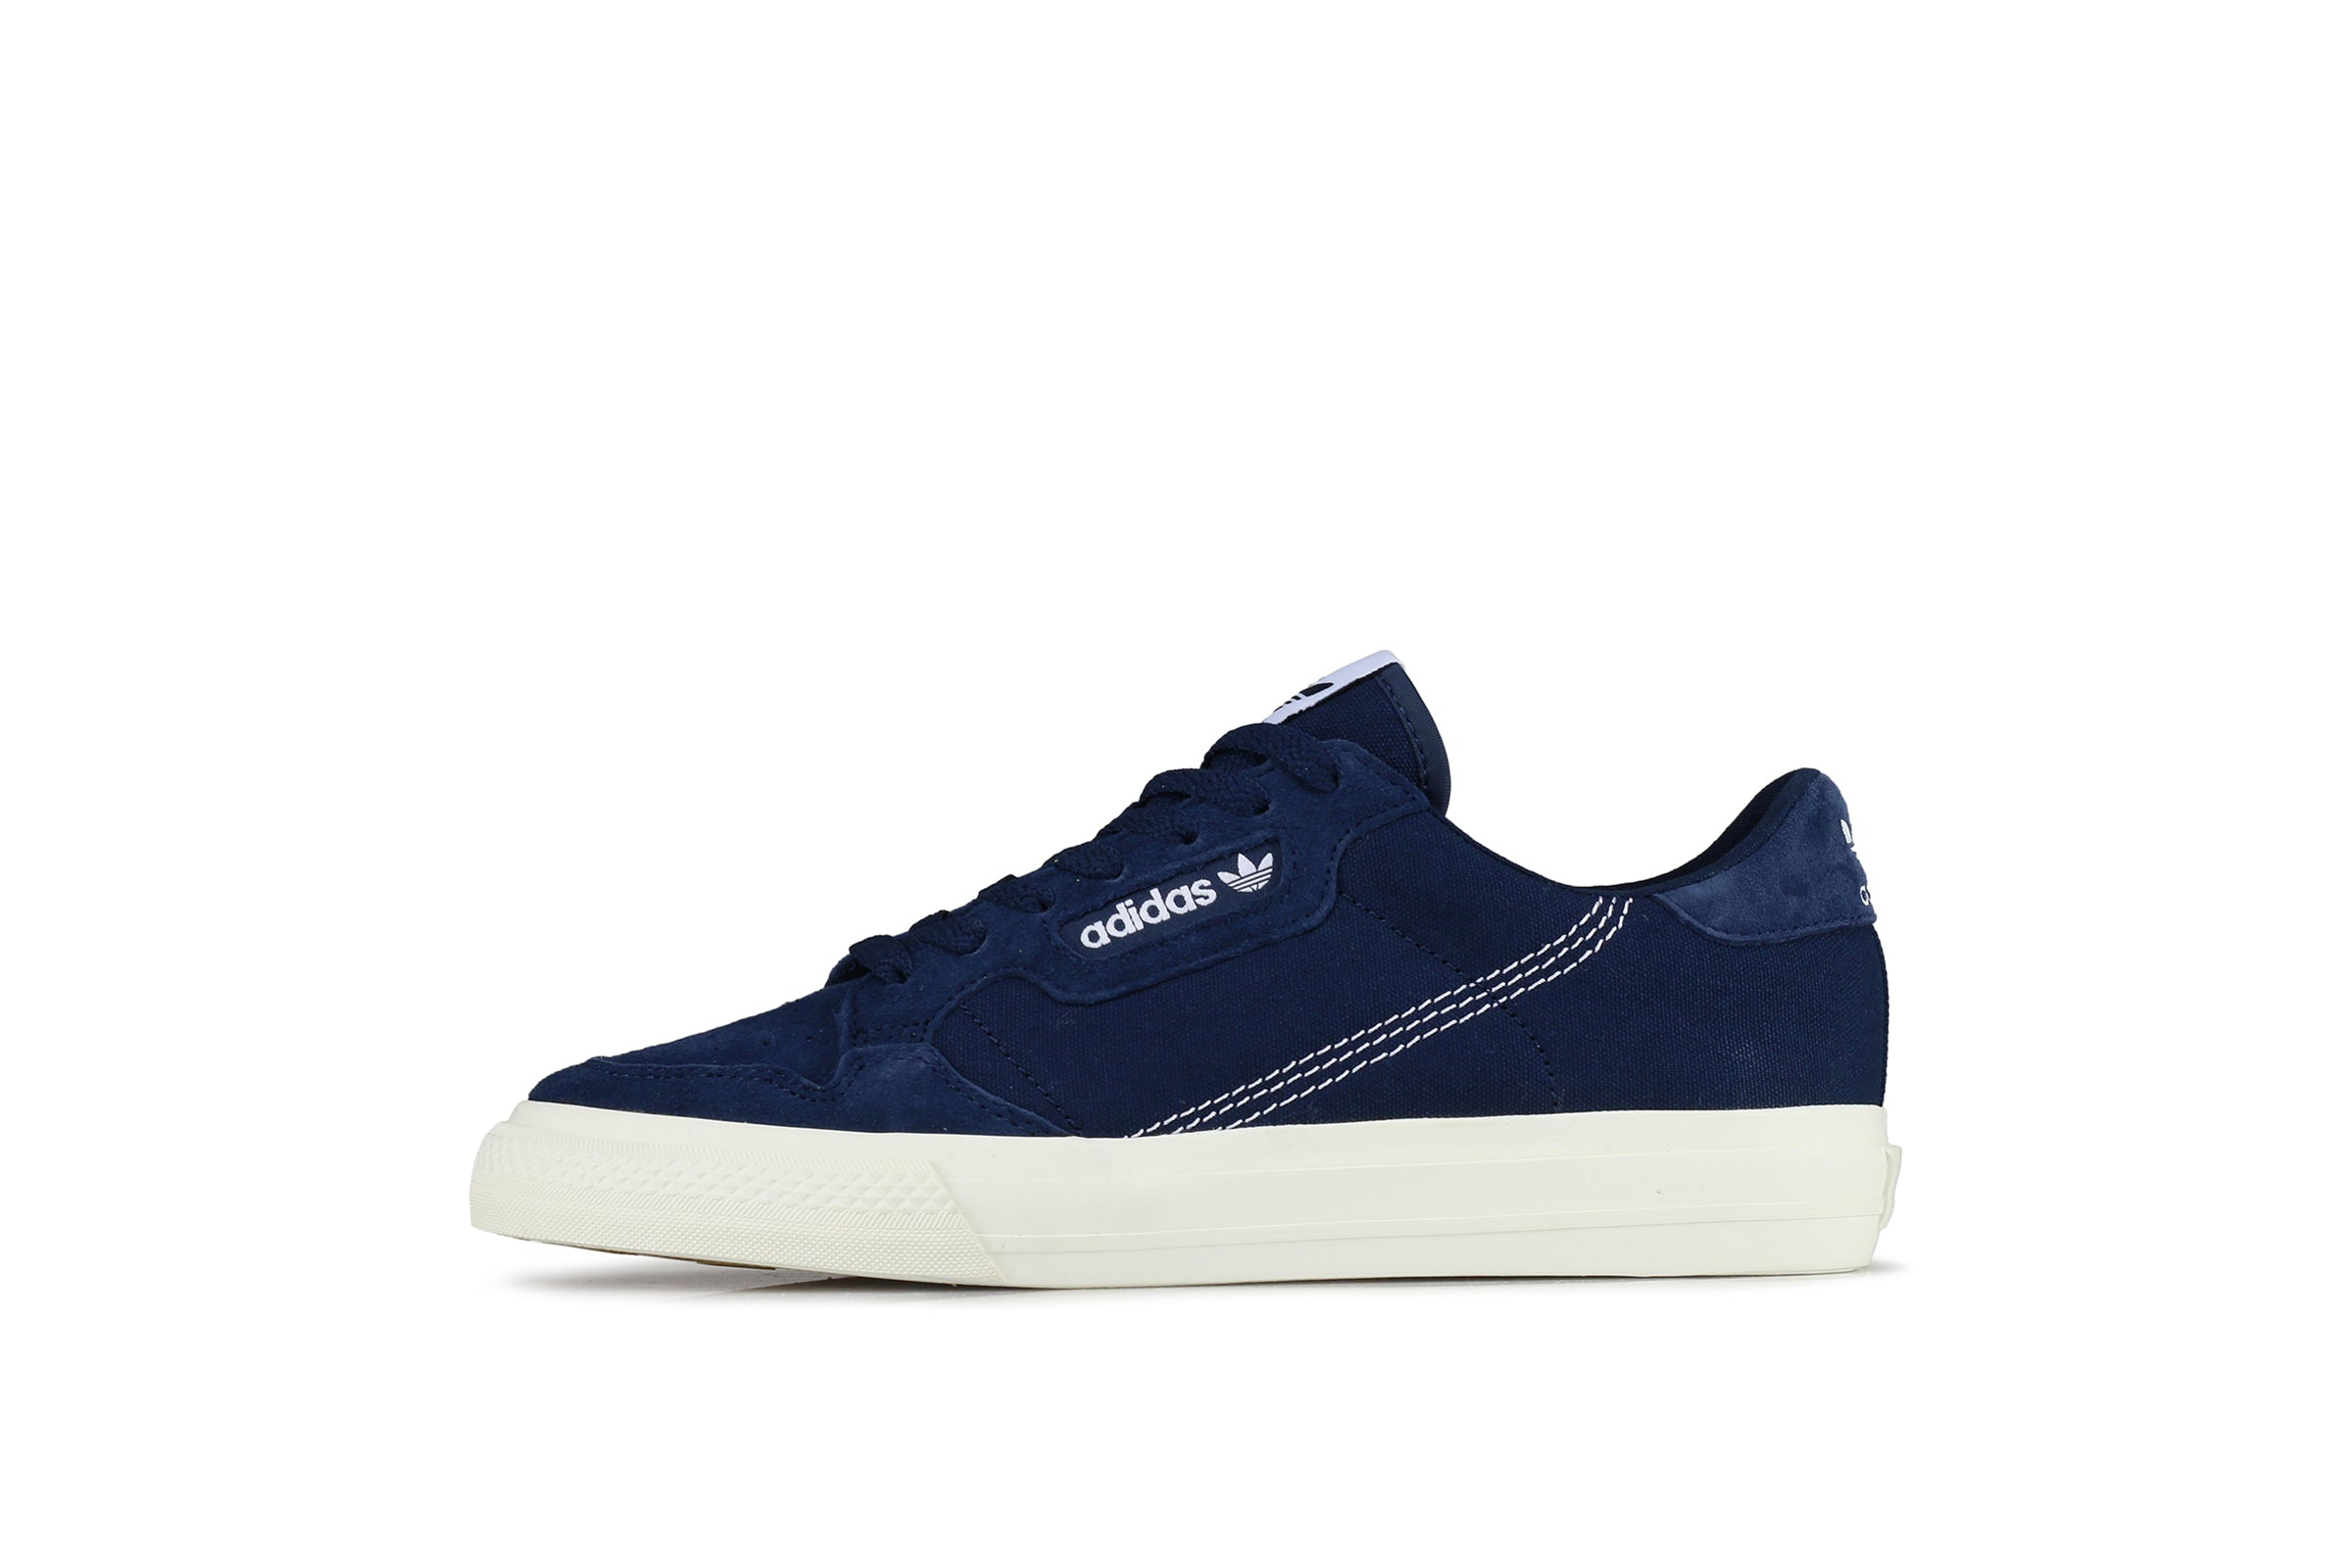 check out 543f1 3c4ef Adidas Continental Vulc